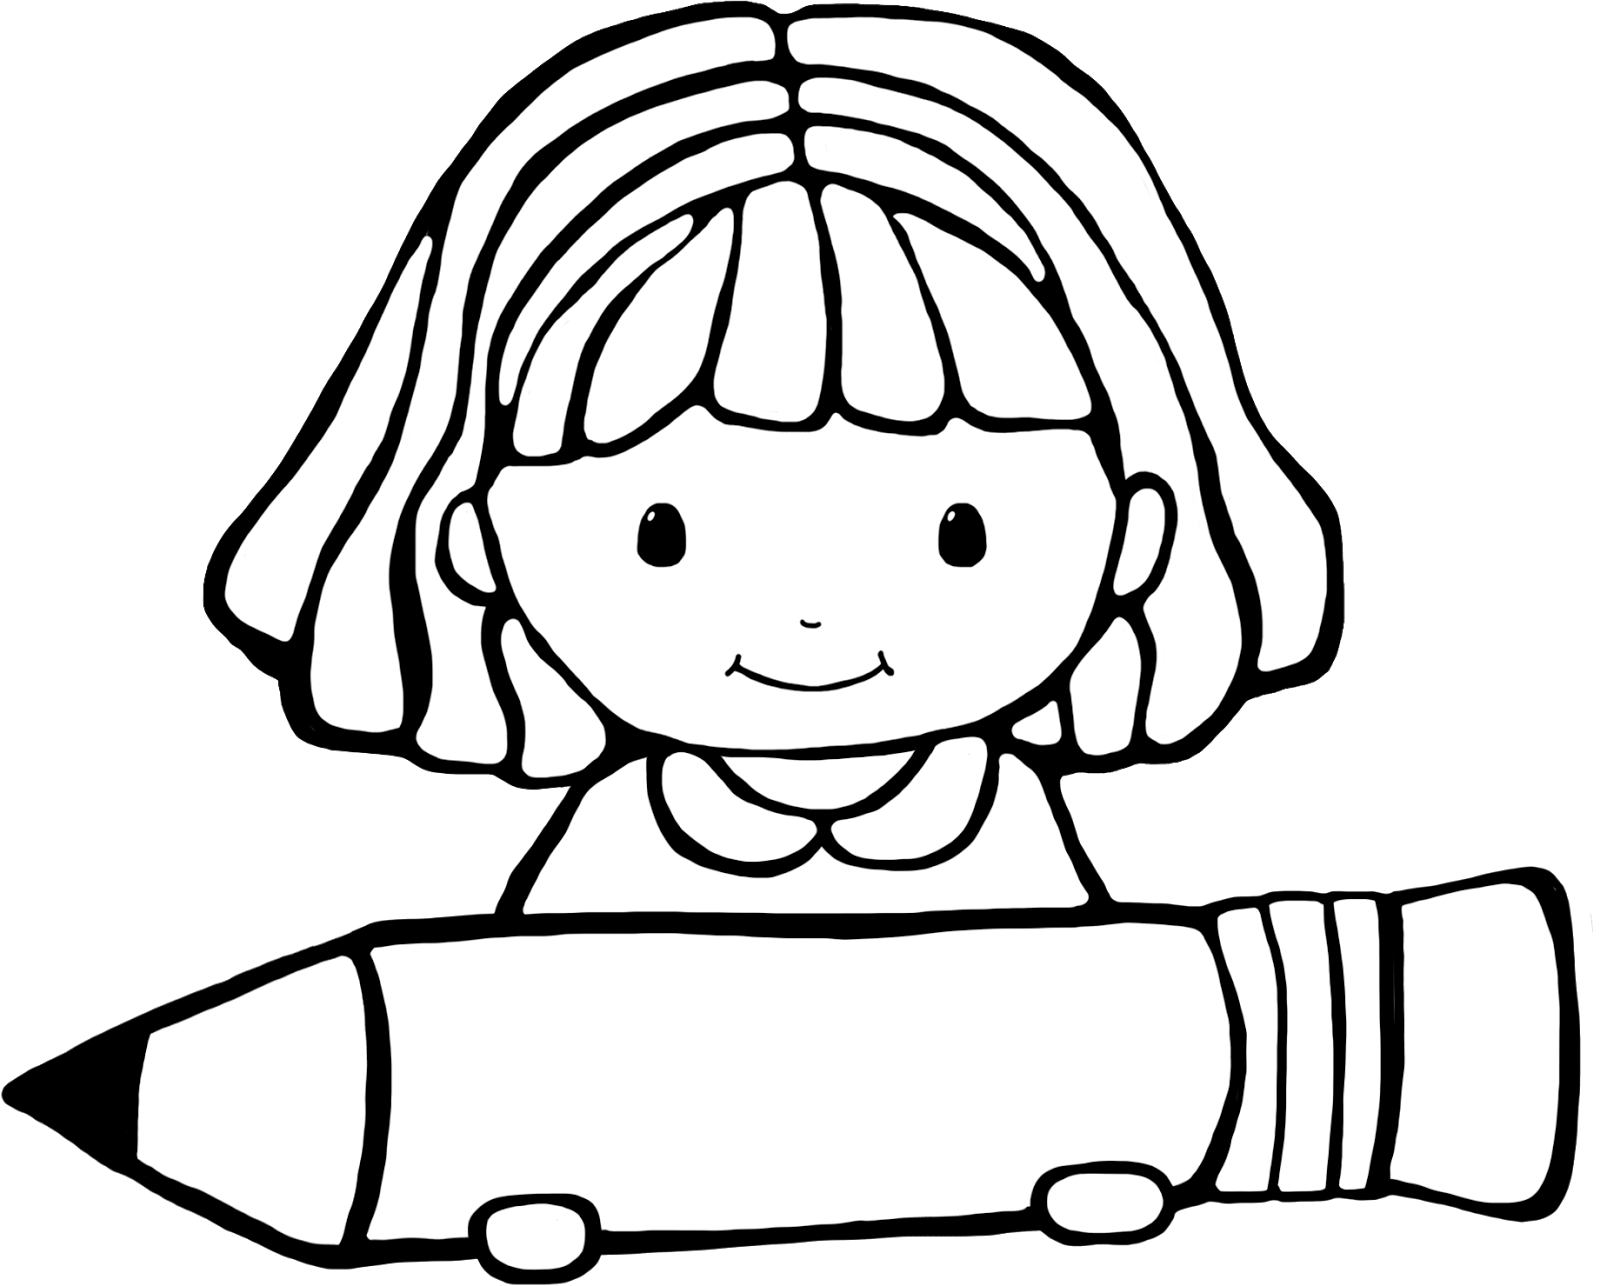 Girl boy writing clipground. Writer clipart black and white